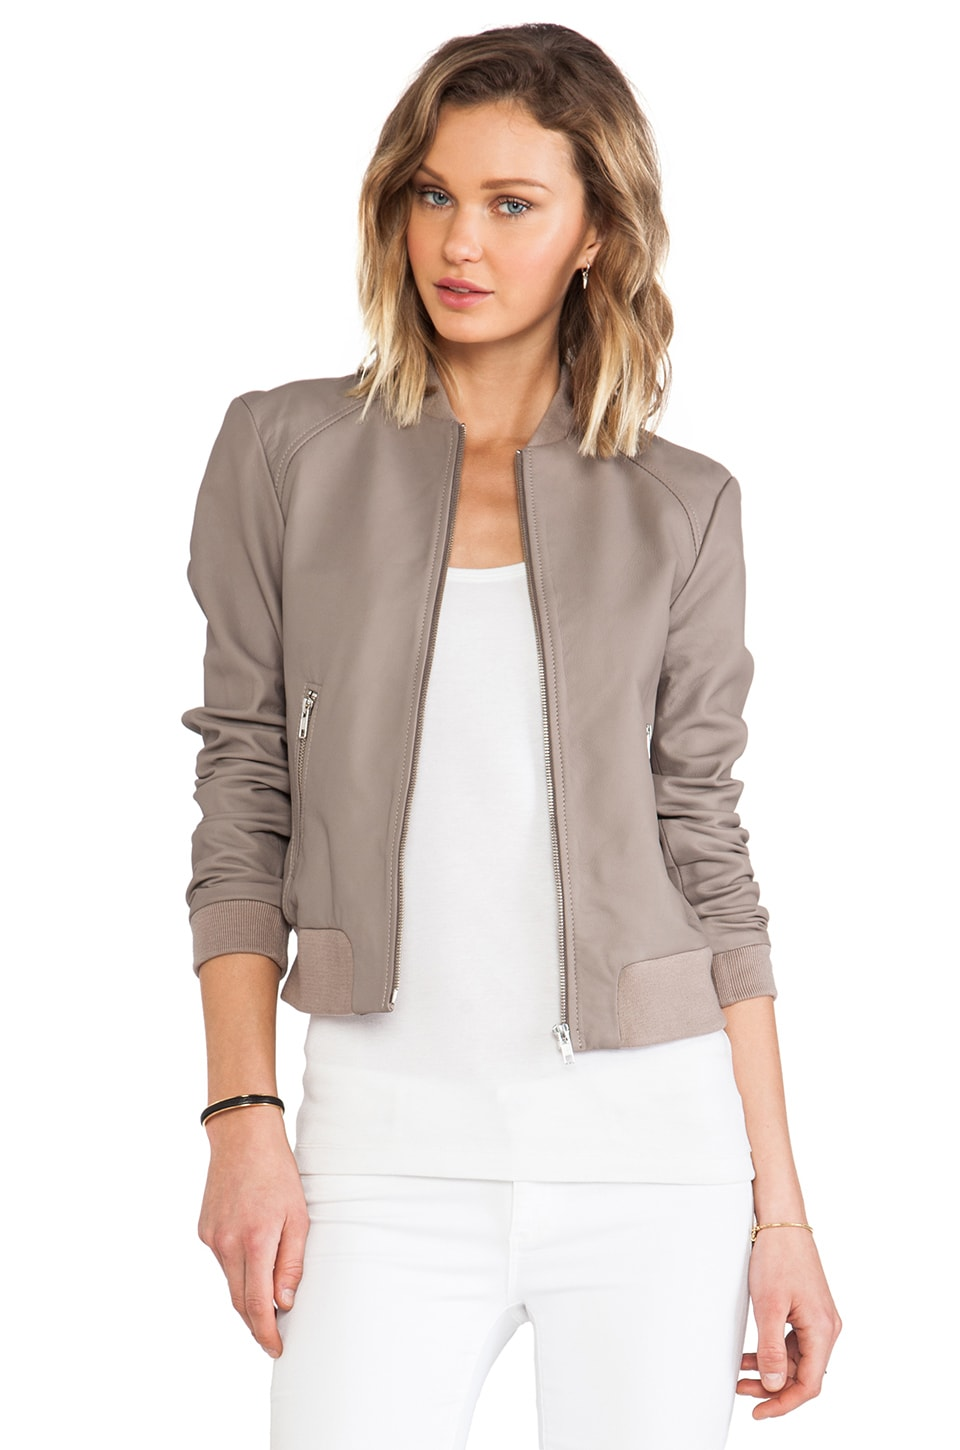 Soia & Kyo Nyla Leather Bomber Jacket in Mushroom